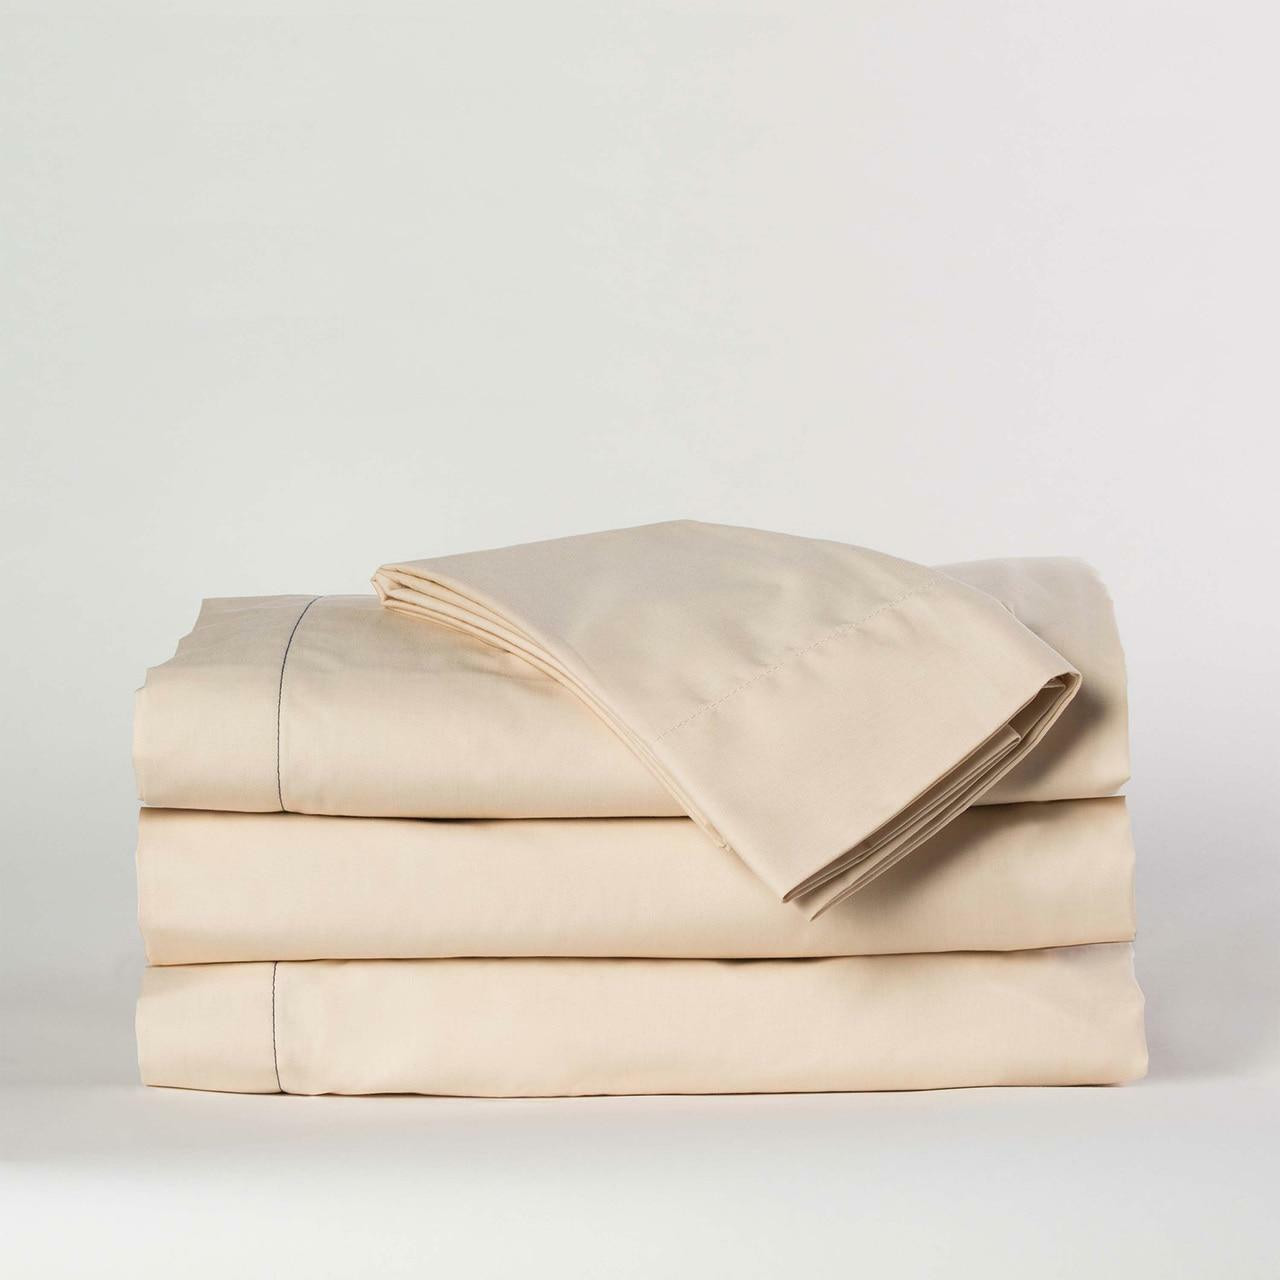 Martex Millenium T200 Bed Sheets - All Sizes and Colors